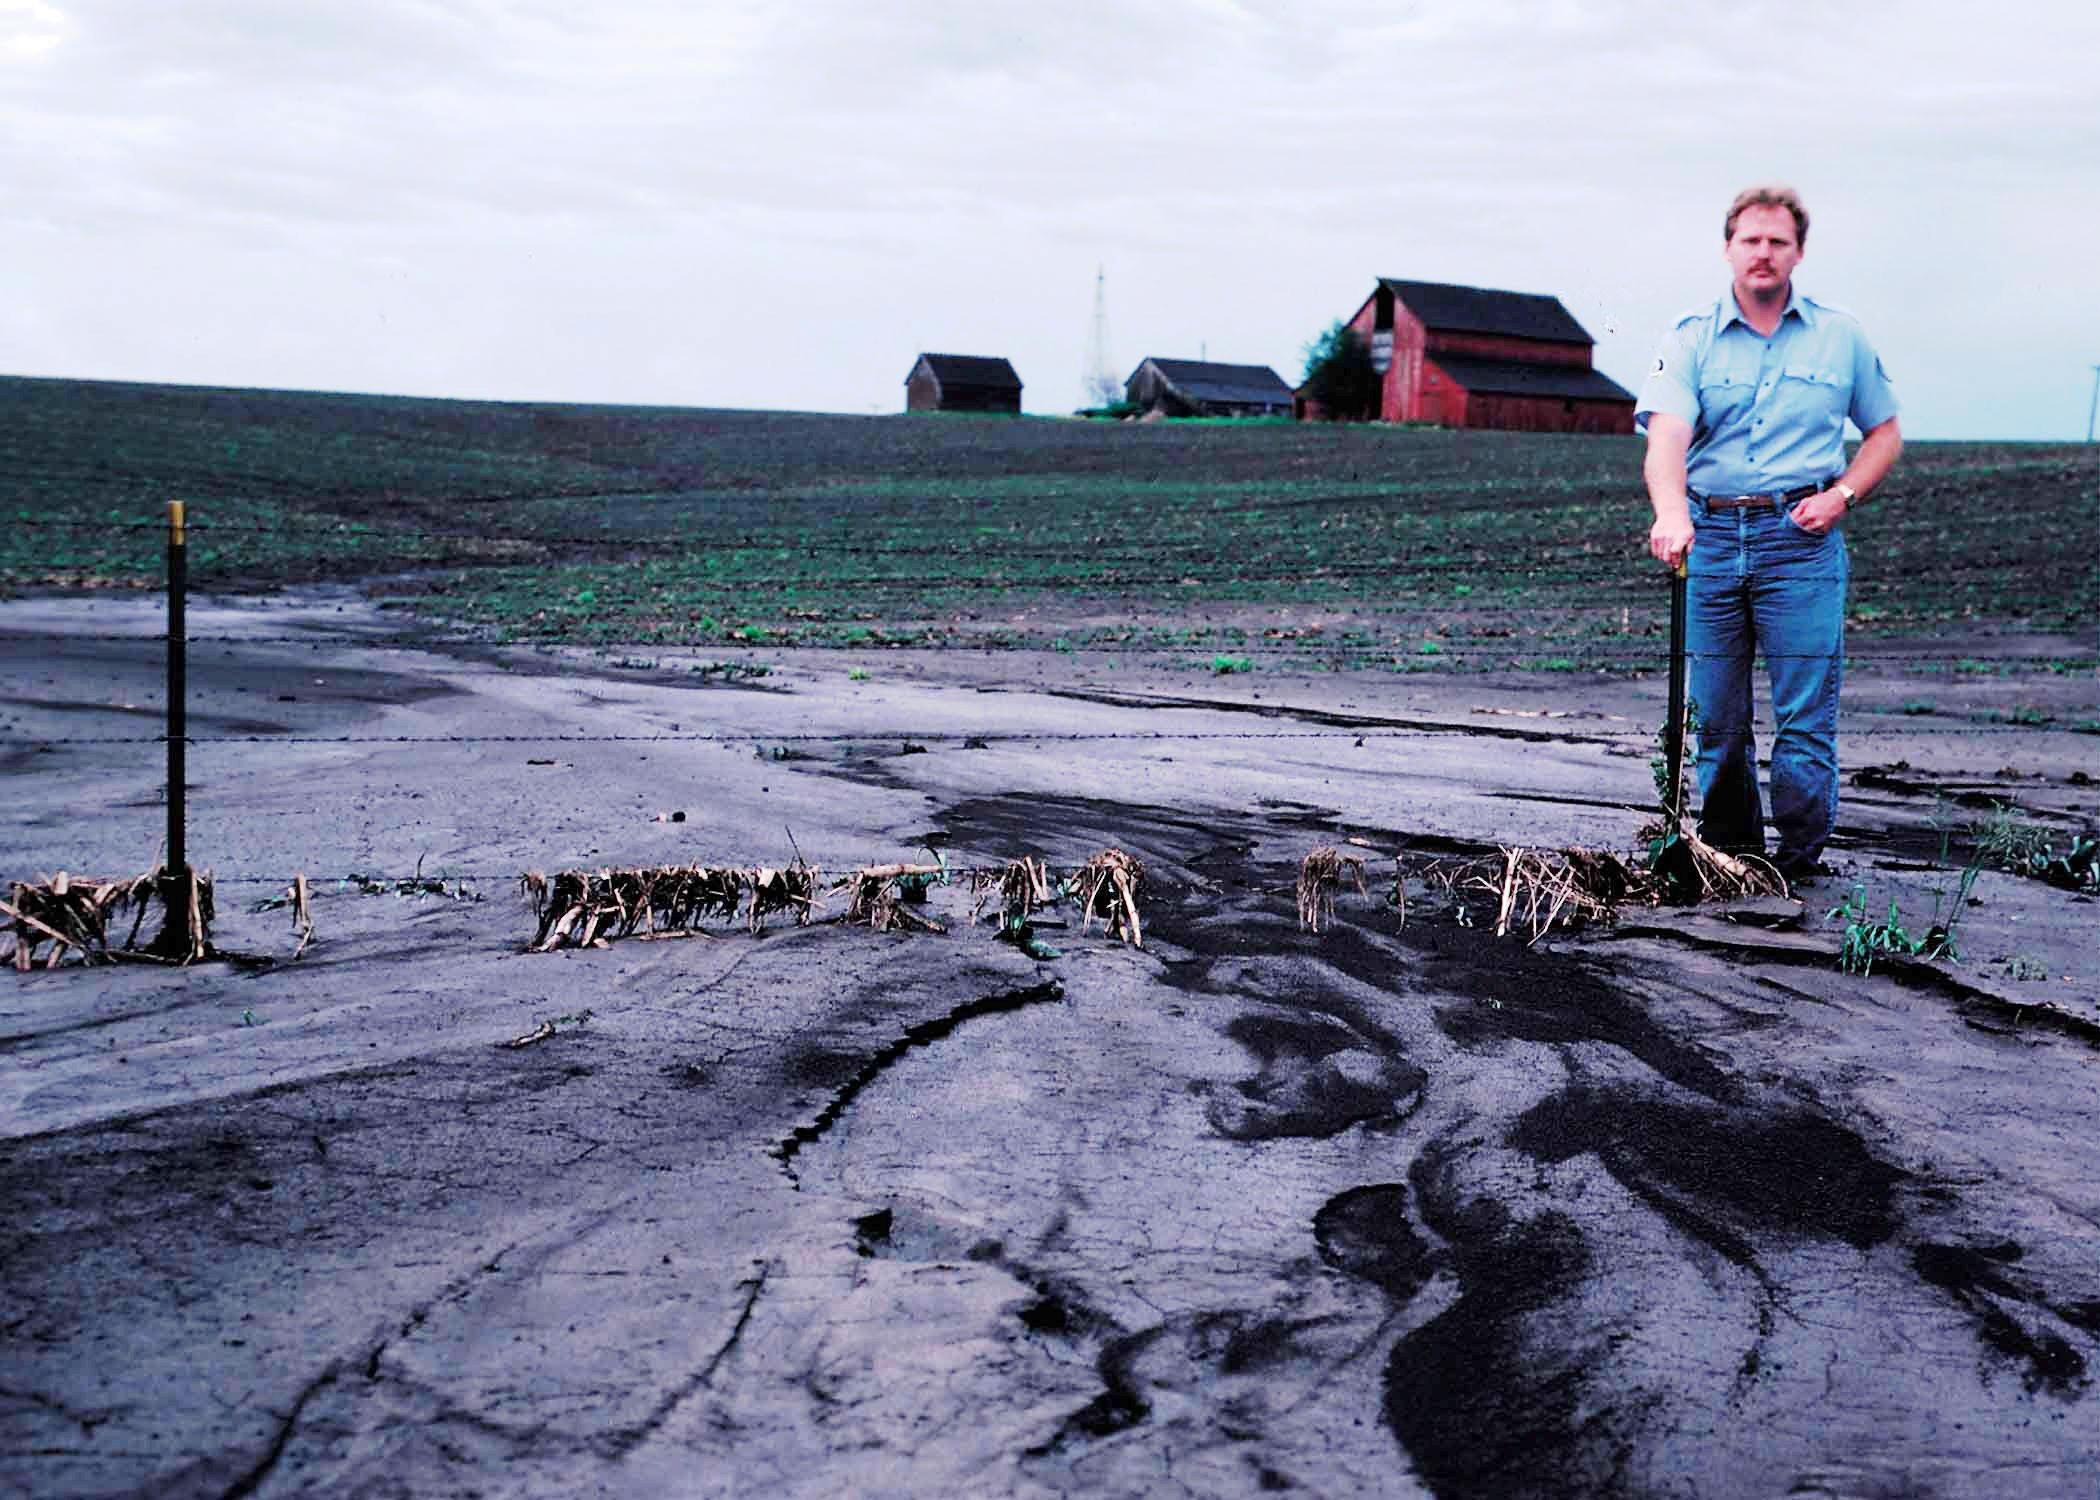 Man standing near sediment coming from severely eroded crop field.